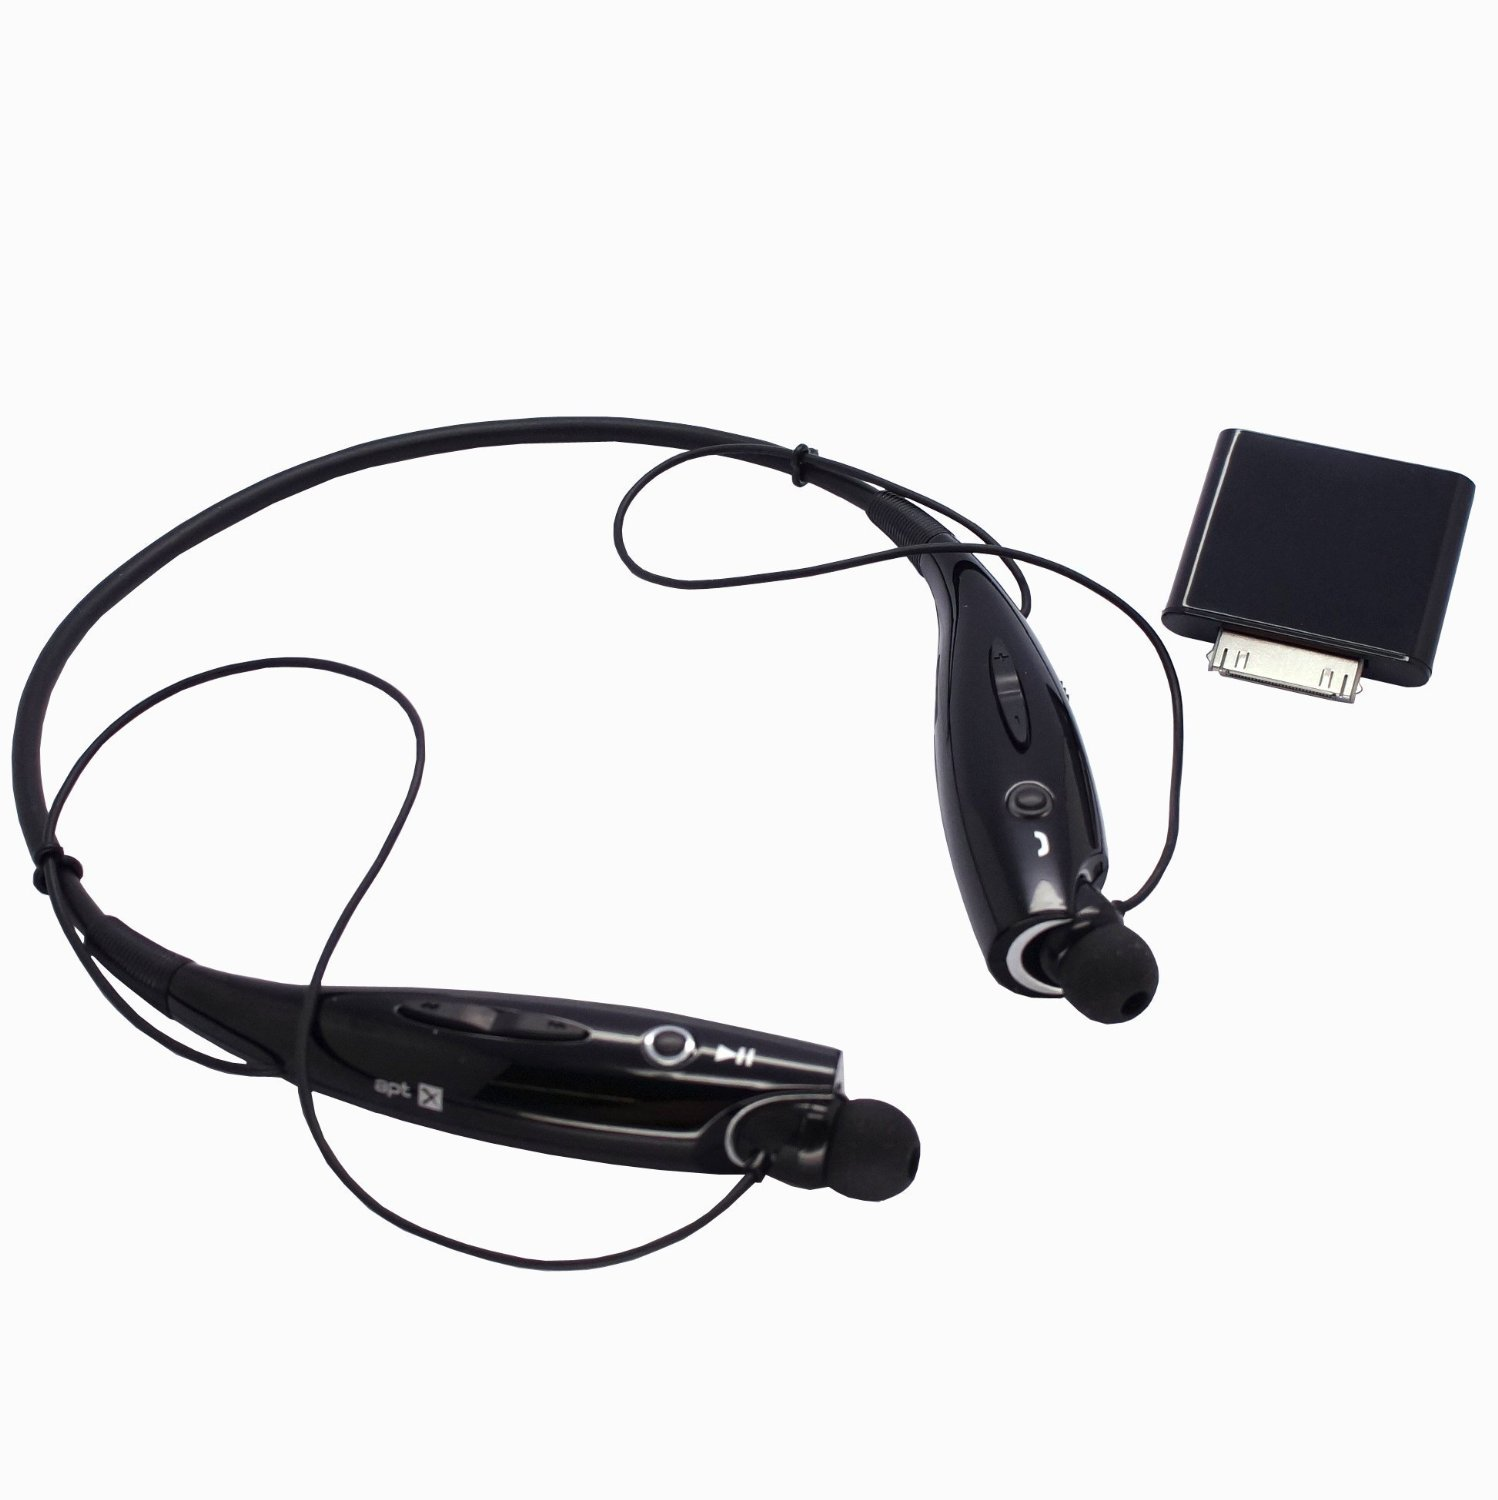 CyberTech Bluetooth Bundle includes Wireless Bluetooth Stereo Earphone Headset with Mic and Ipod Bluetooth Transmitter